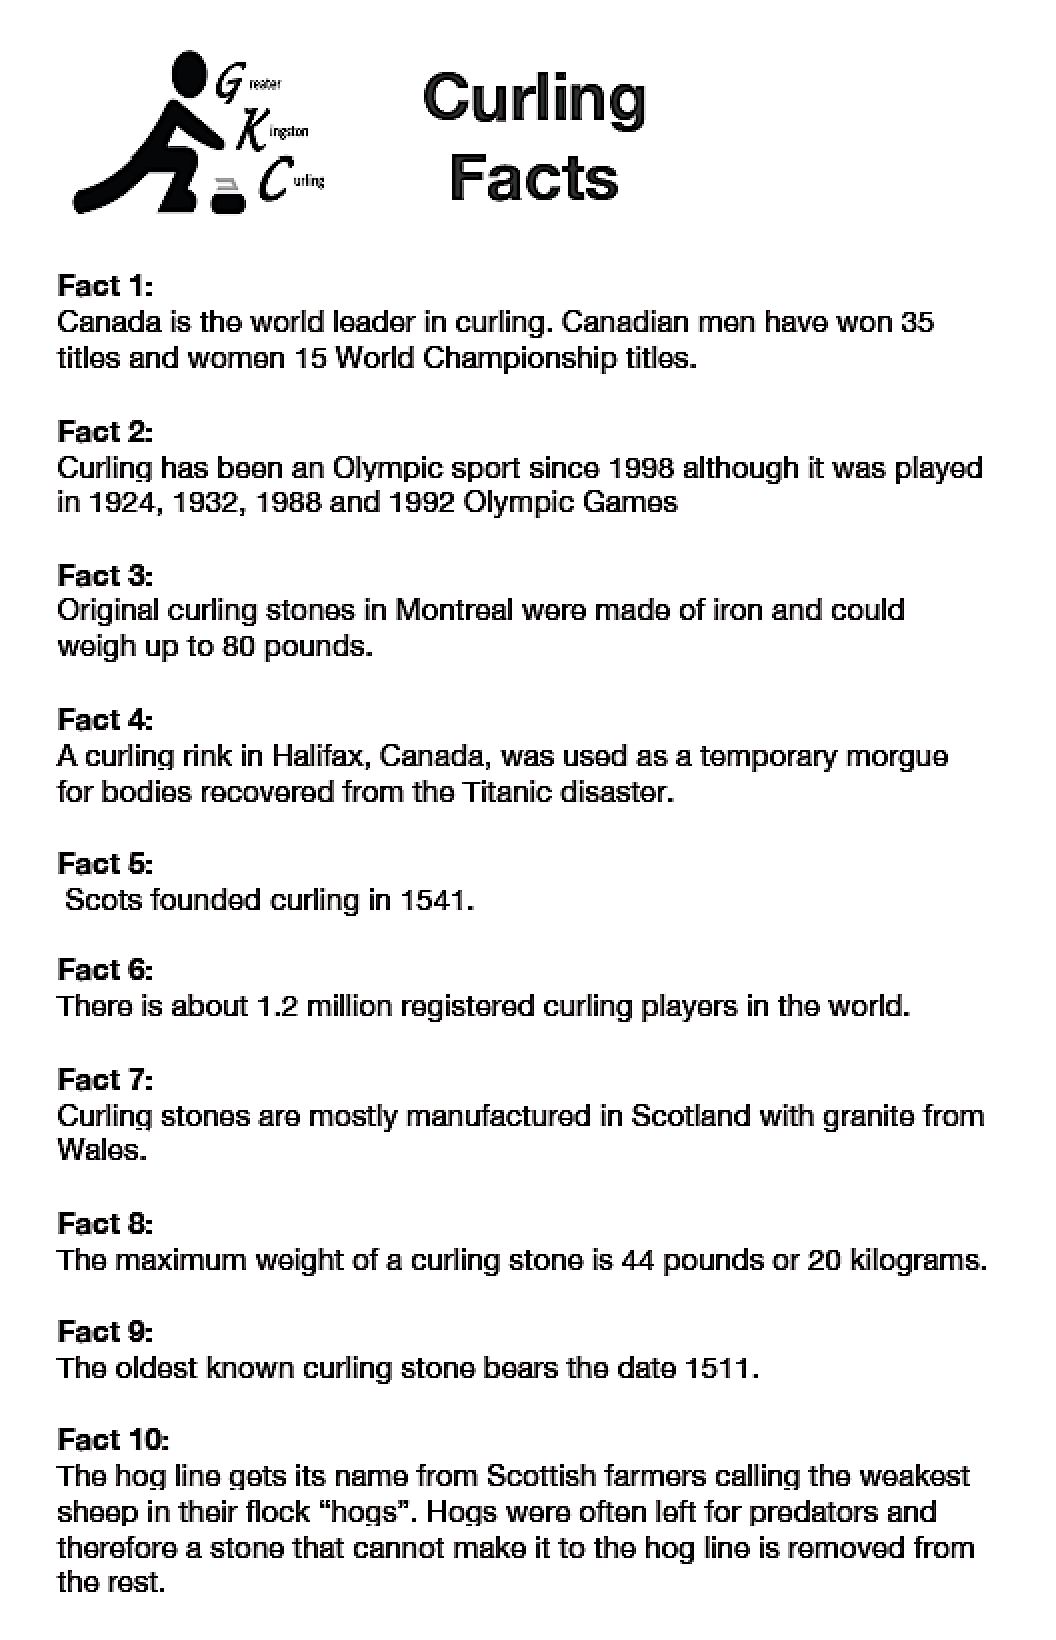 GKCCurlingFacts